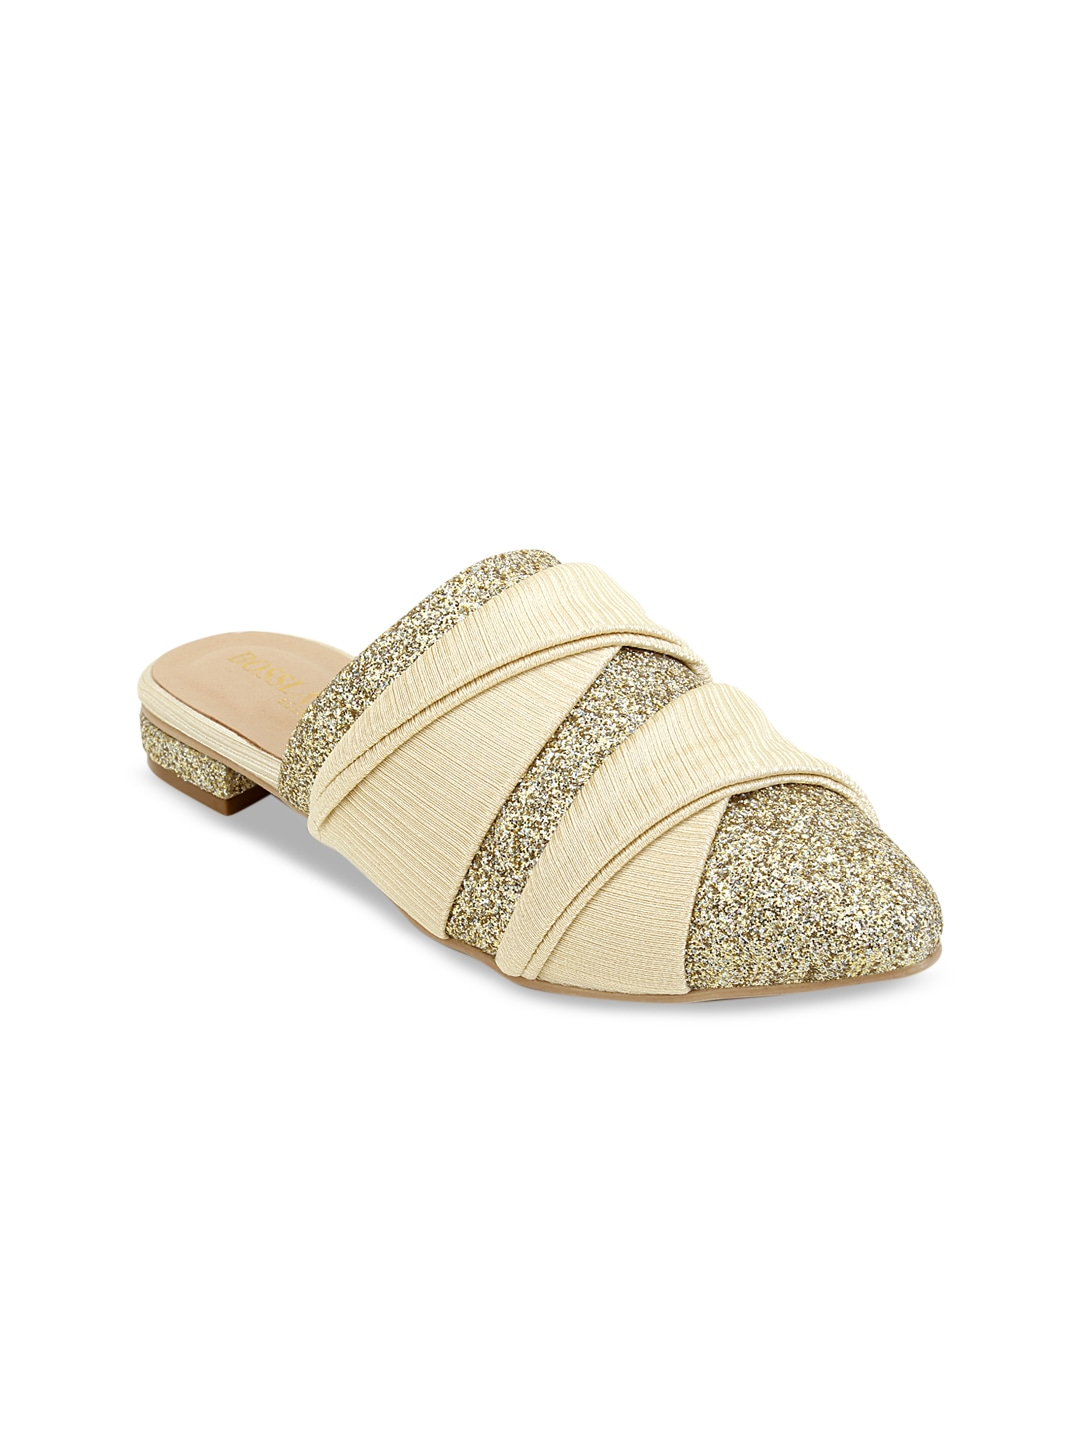 Gold-Toned Embellished Mules